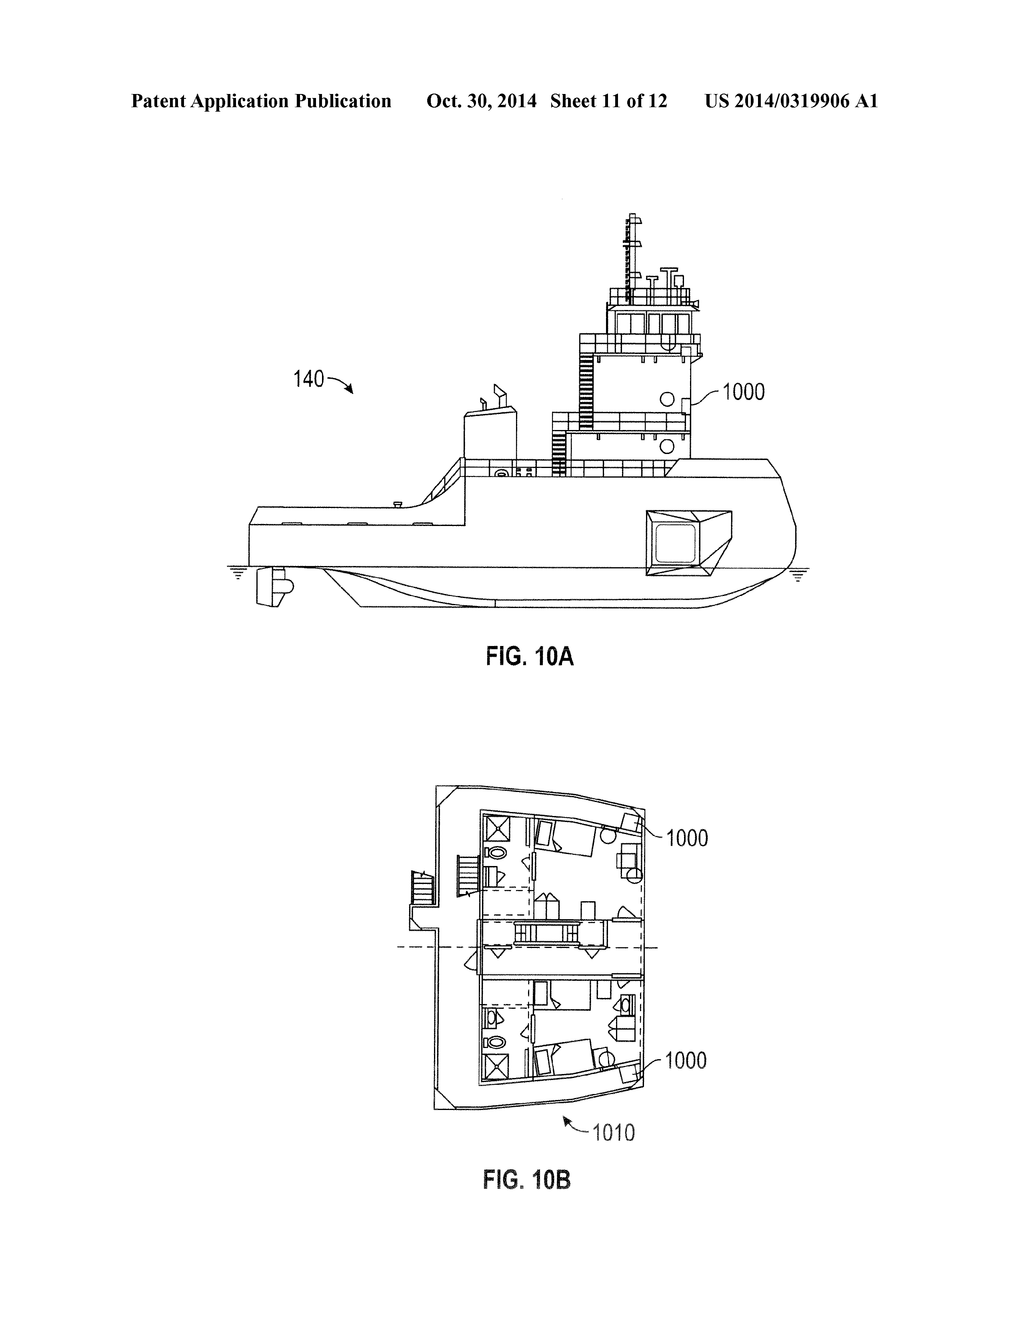 hight resolution of tug boat lng barge system with an umbilical power line diagram schematic and image 12